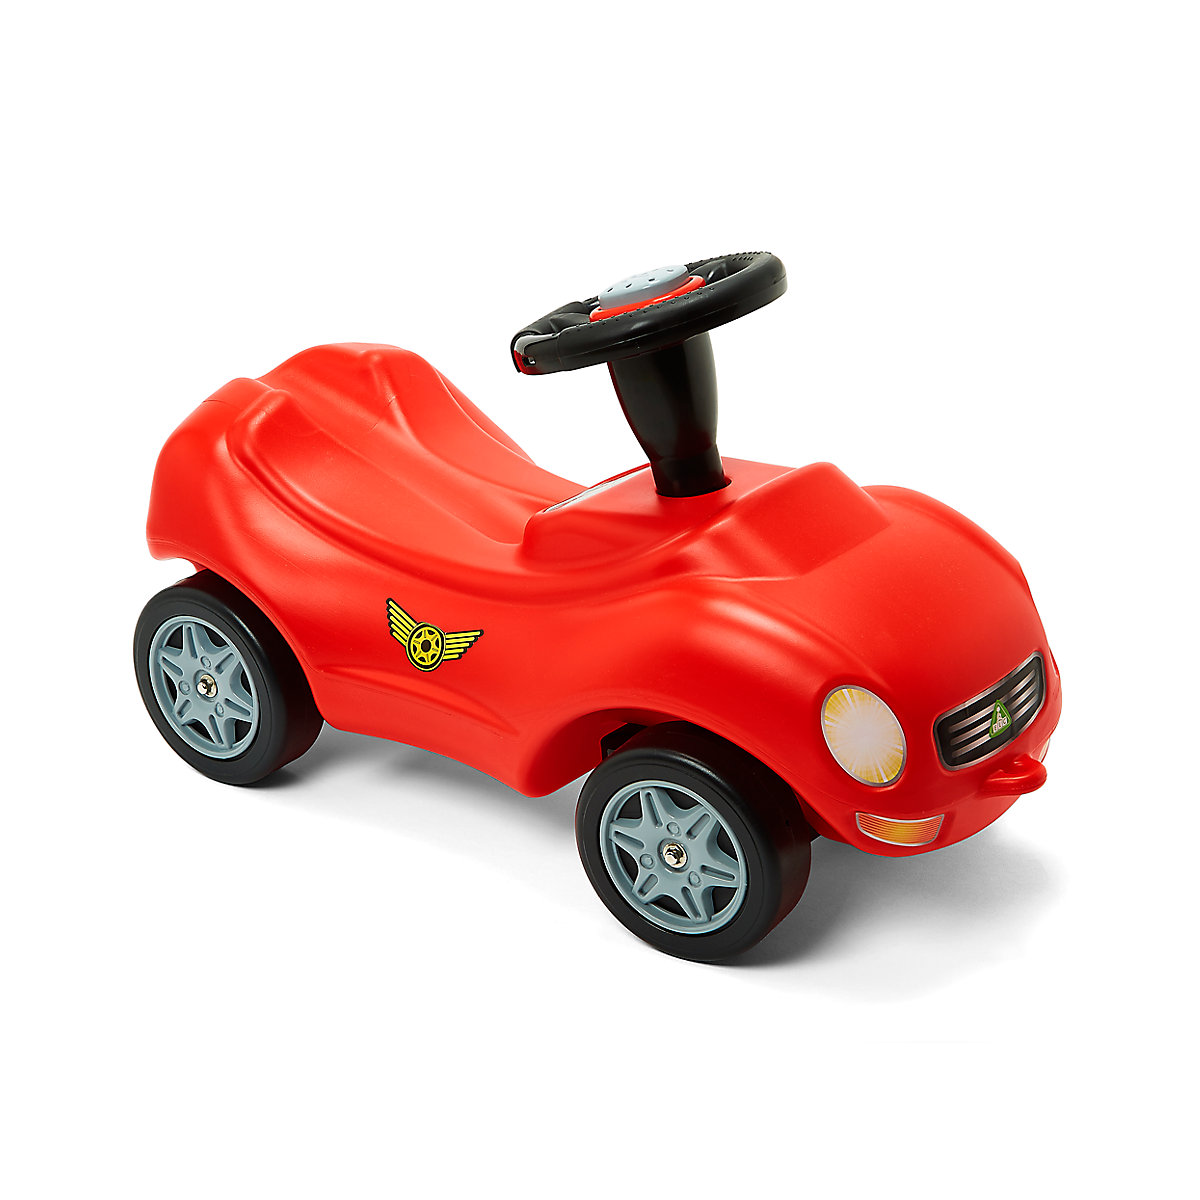 ELC Racer Ride On Car